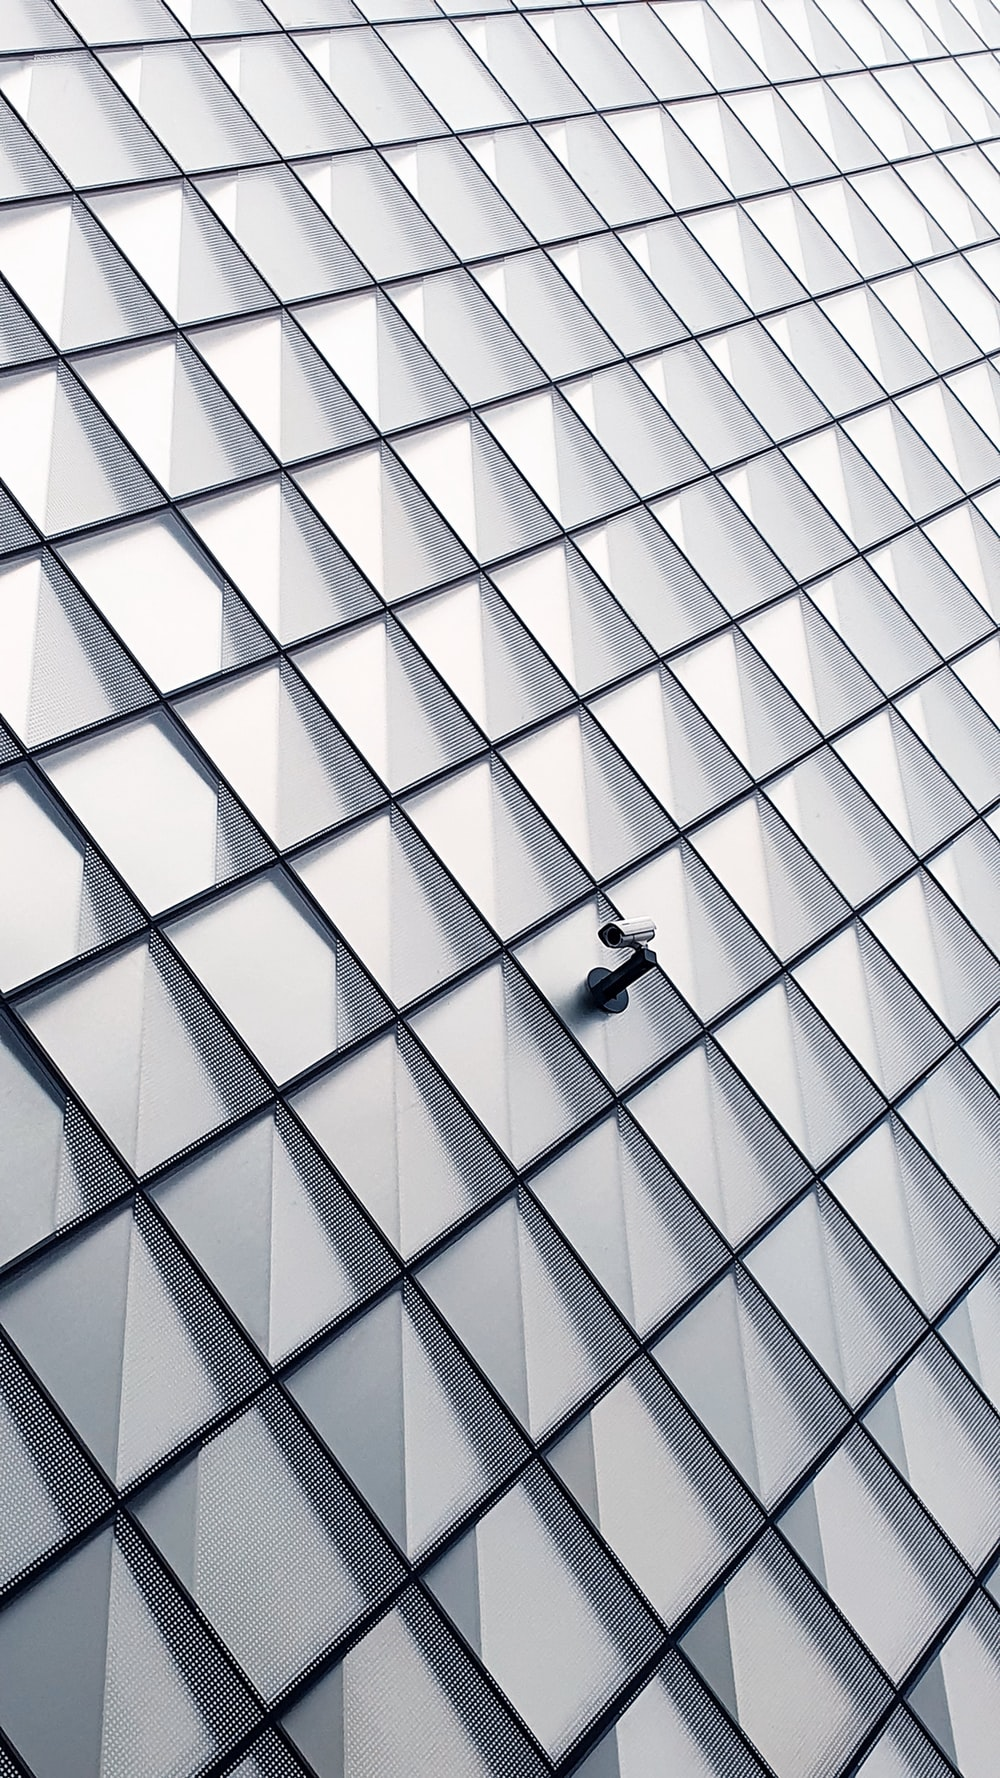 white and black glass walled building